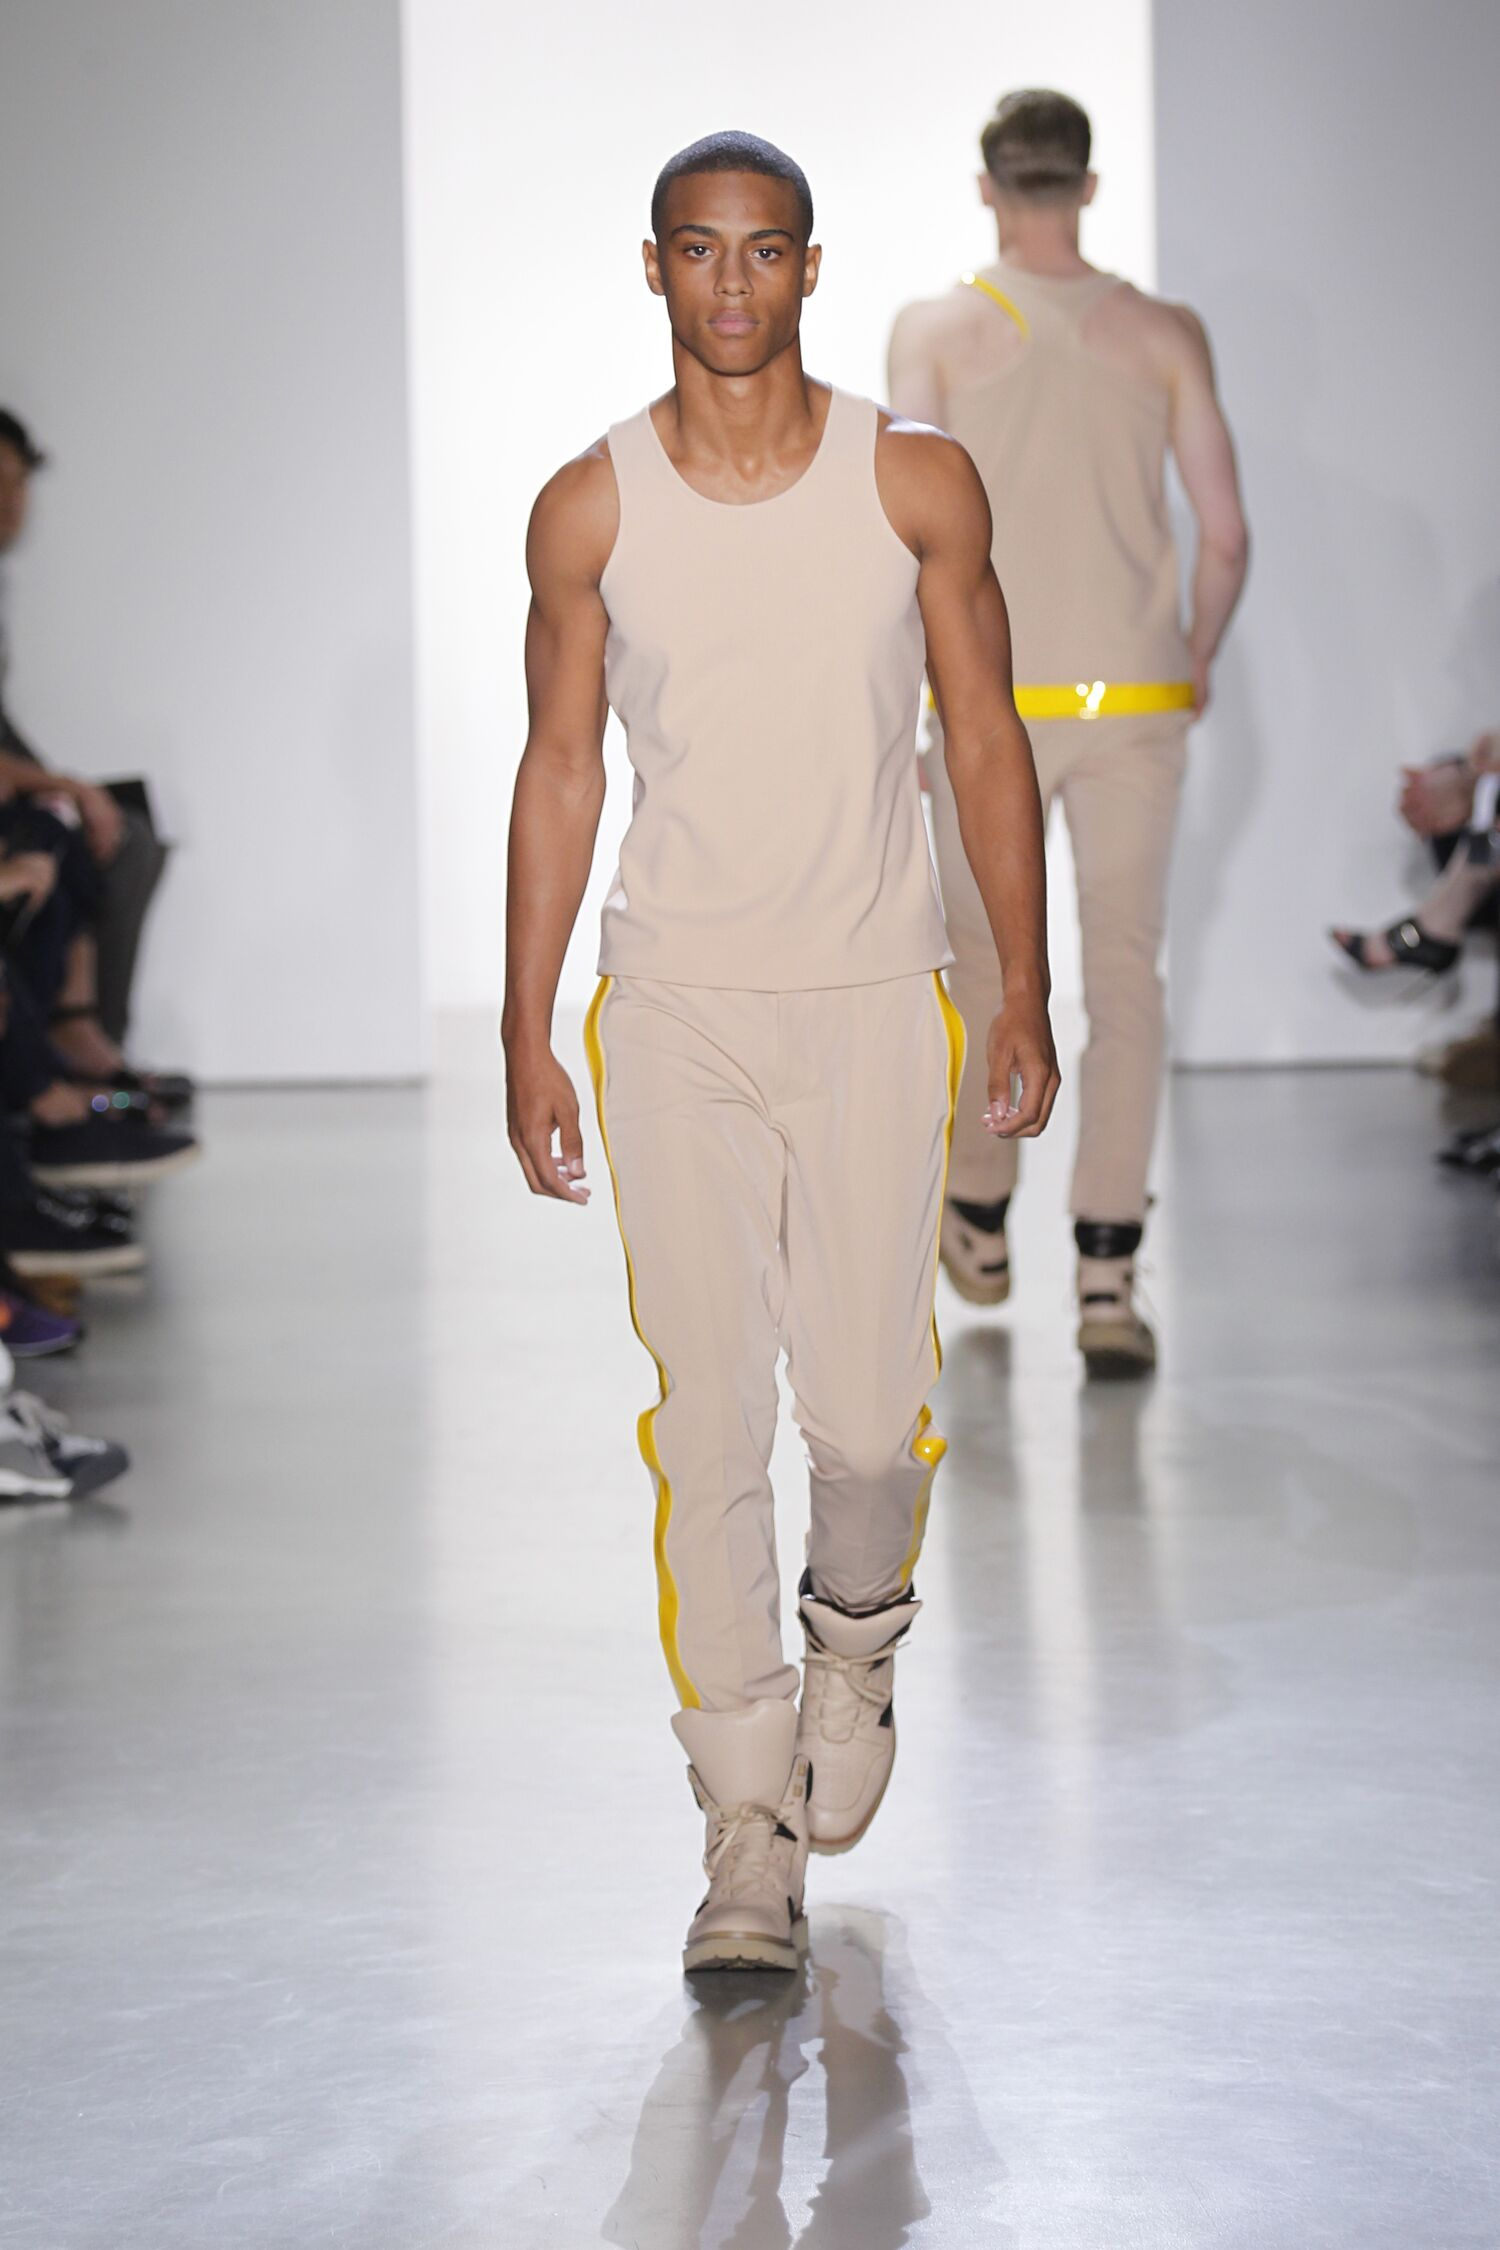 Fashion Man Model Calvin Klein Collection Catwalk